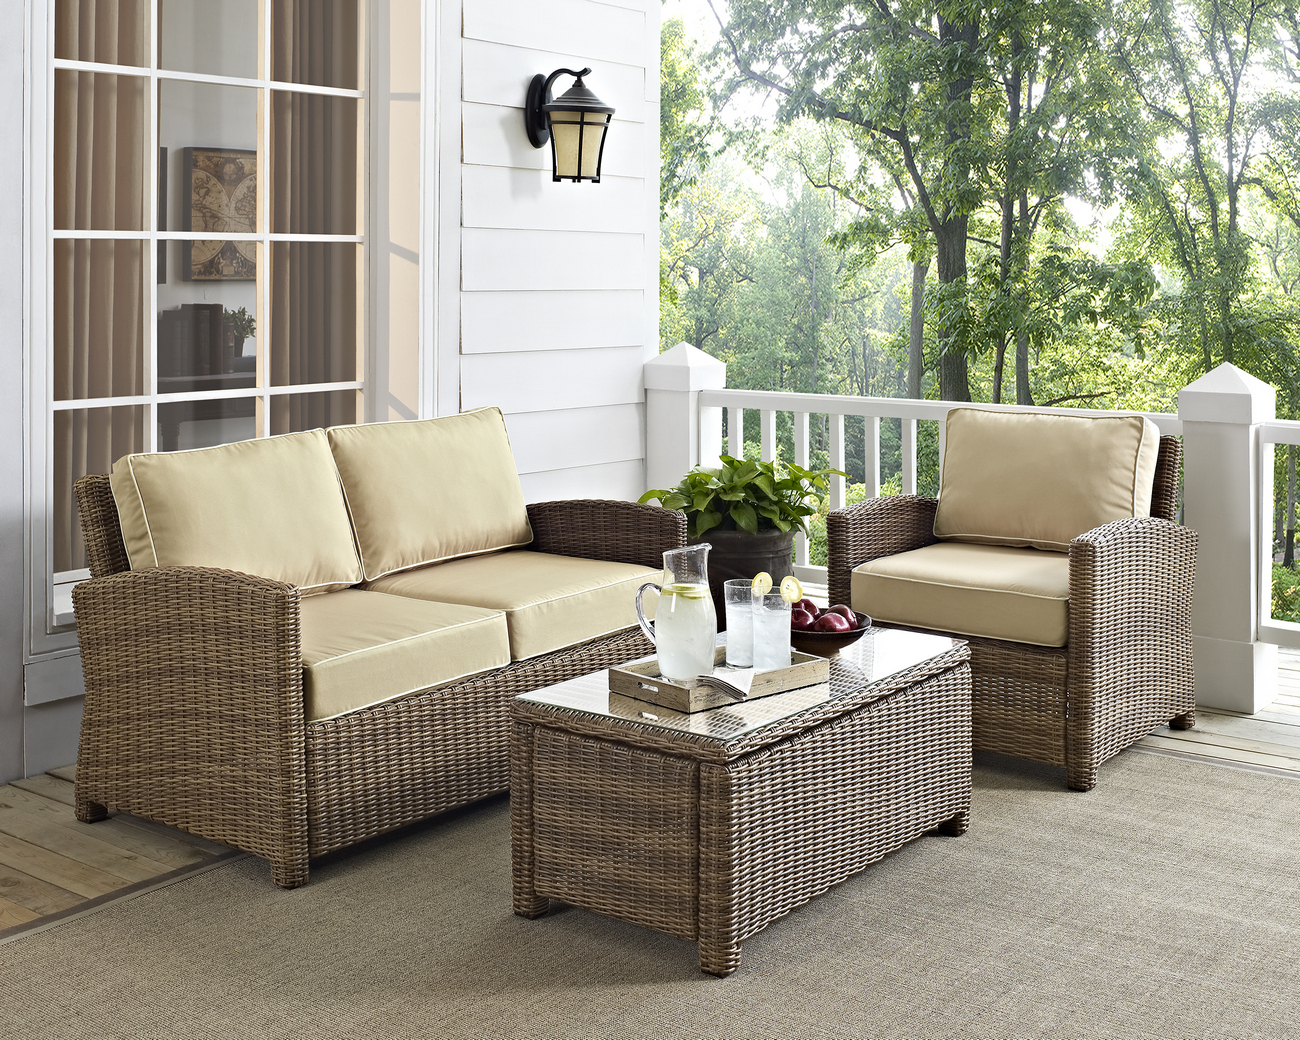 Outdoor Wicker Seating Set Sand Cushions Loveseat Arm Chair Glass Top Table